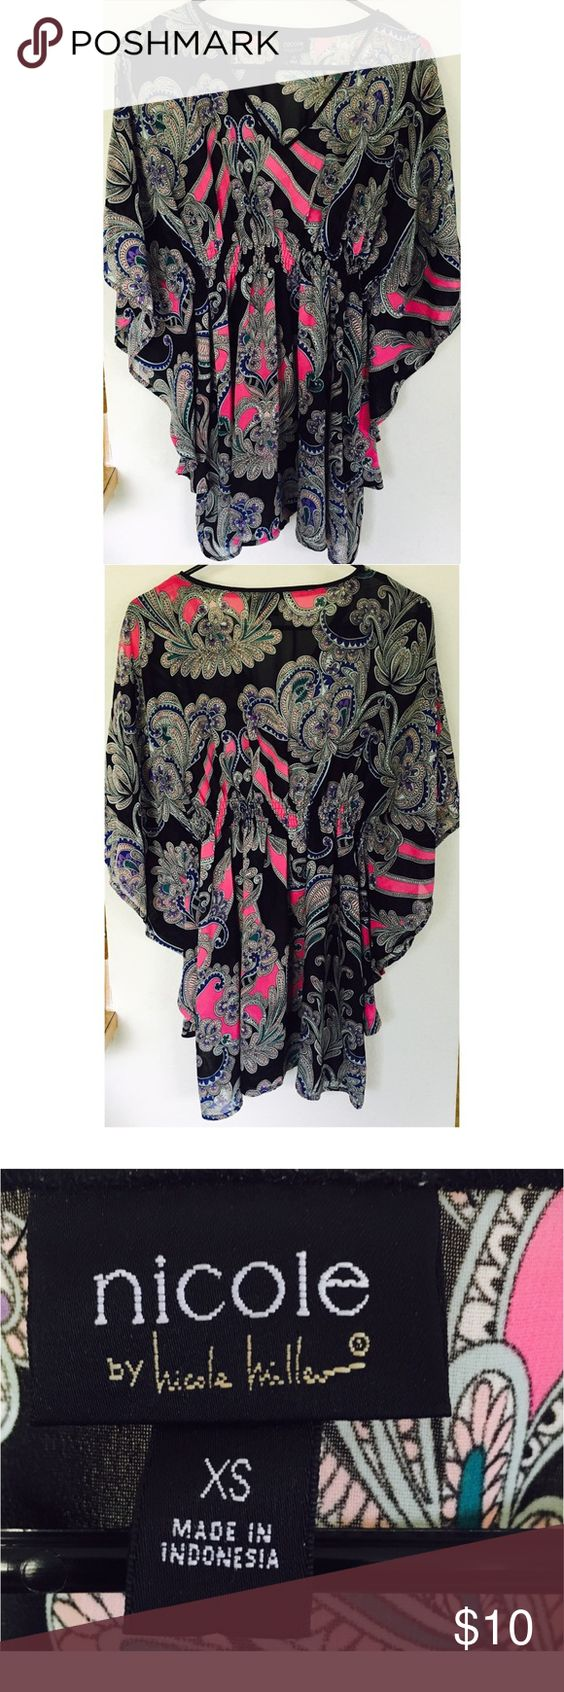 Nicole Miller multi color flowy blouse Excellent condition. Very pretty and comfortable top. It's an xs but fits anywhere from xs to med fit. All depends on how flowy you like your tops. Colors in the blouse are black, purple, magenta, teal, royal blue and white Nicole by Nicole Miller Tops Blouses